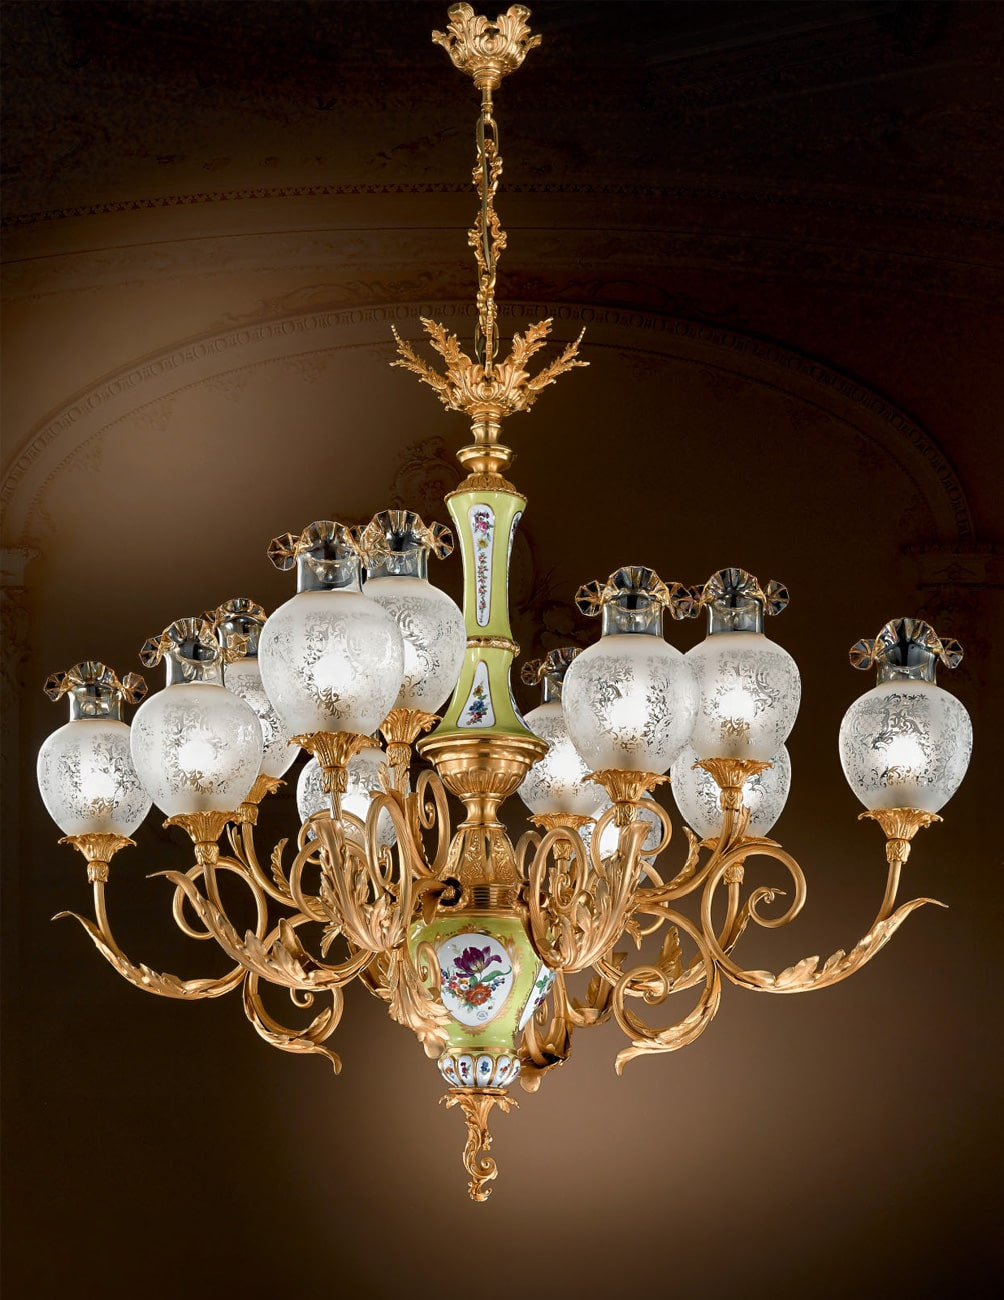 decorative lighting chandeliers 54